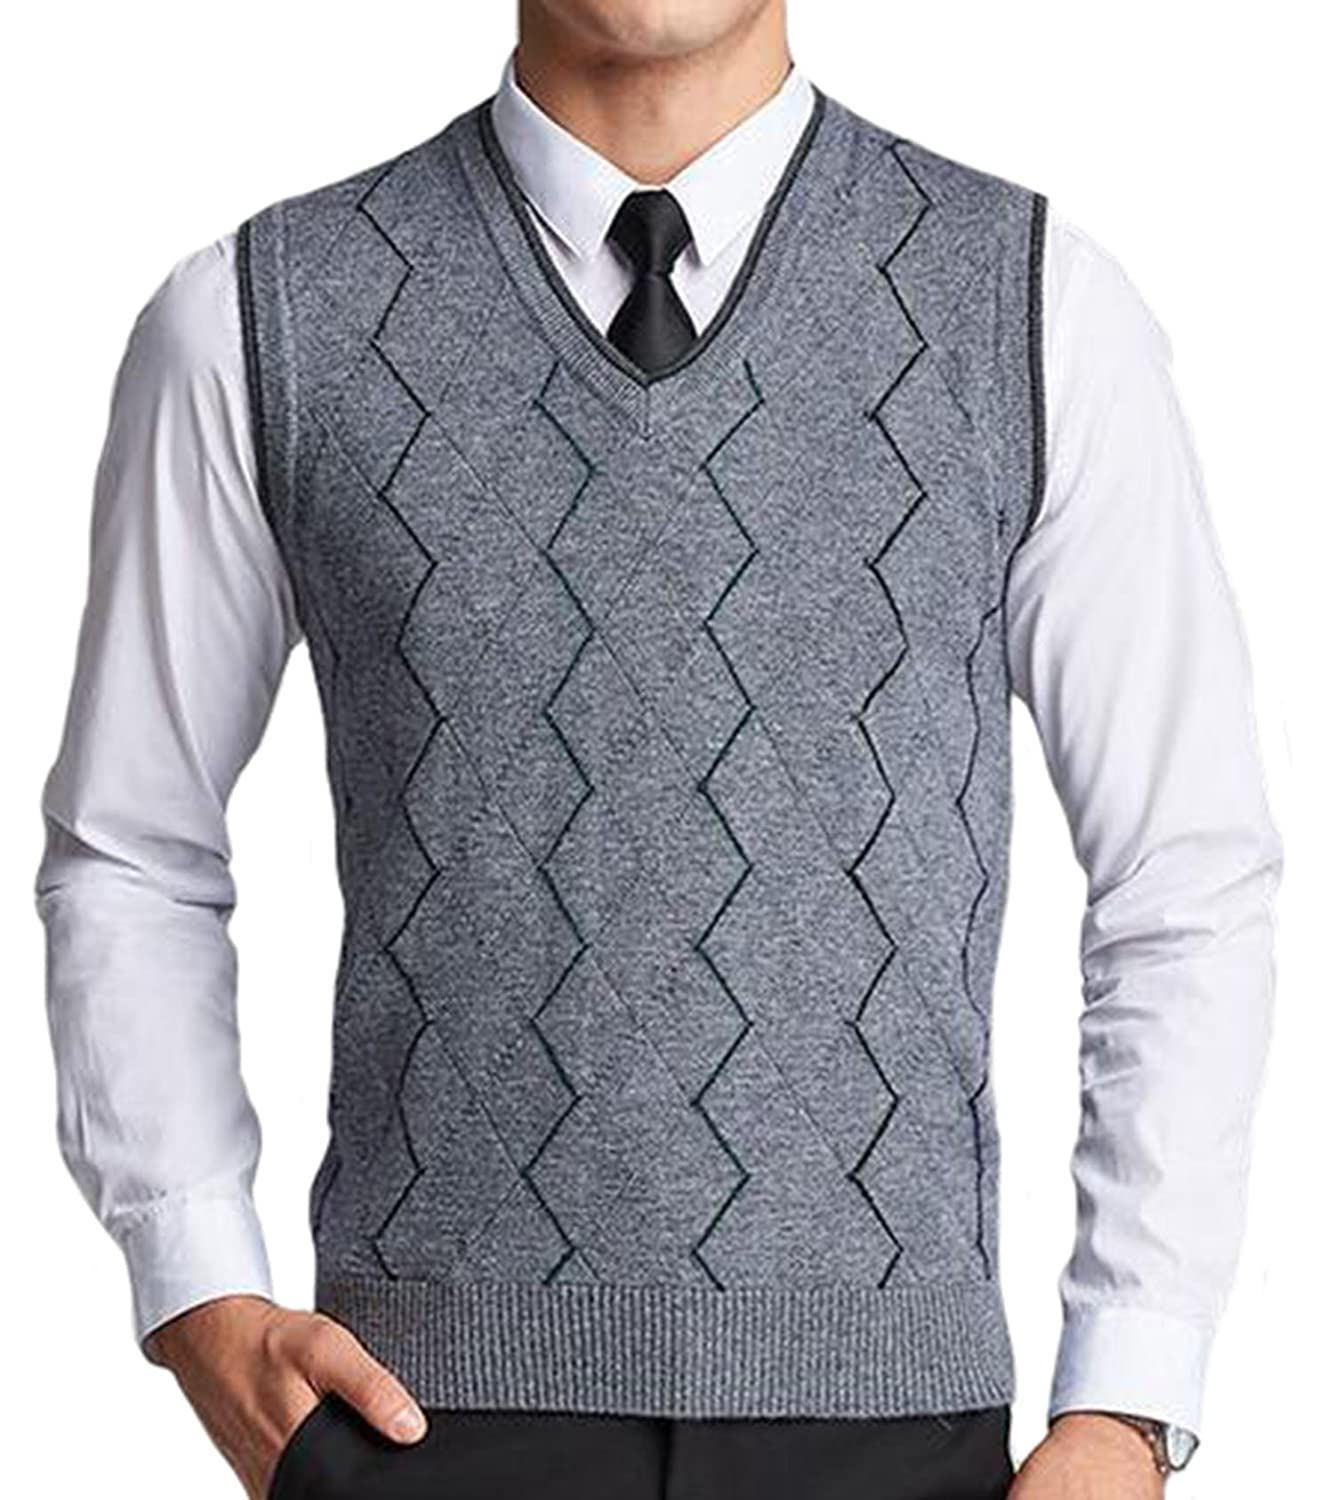 DD.UP Men's Casual Slim Fit Knit V-Neck Argyle Pattern Wool Sweater Vest